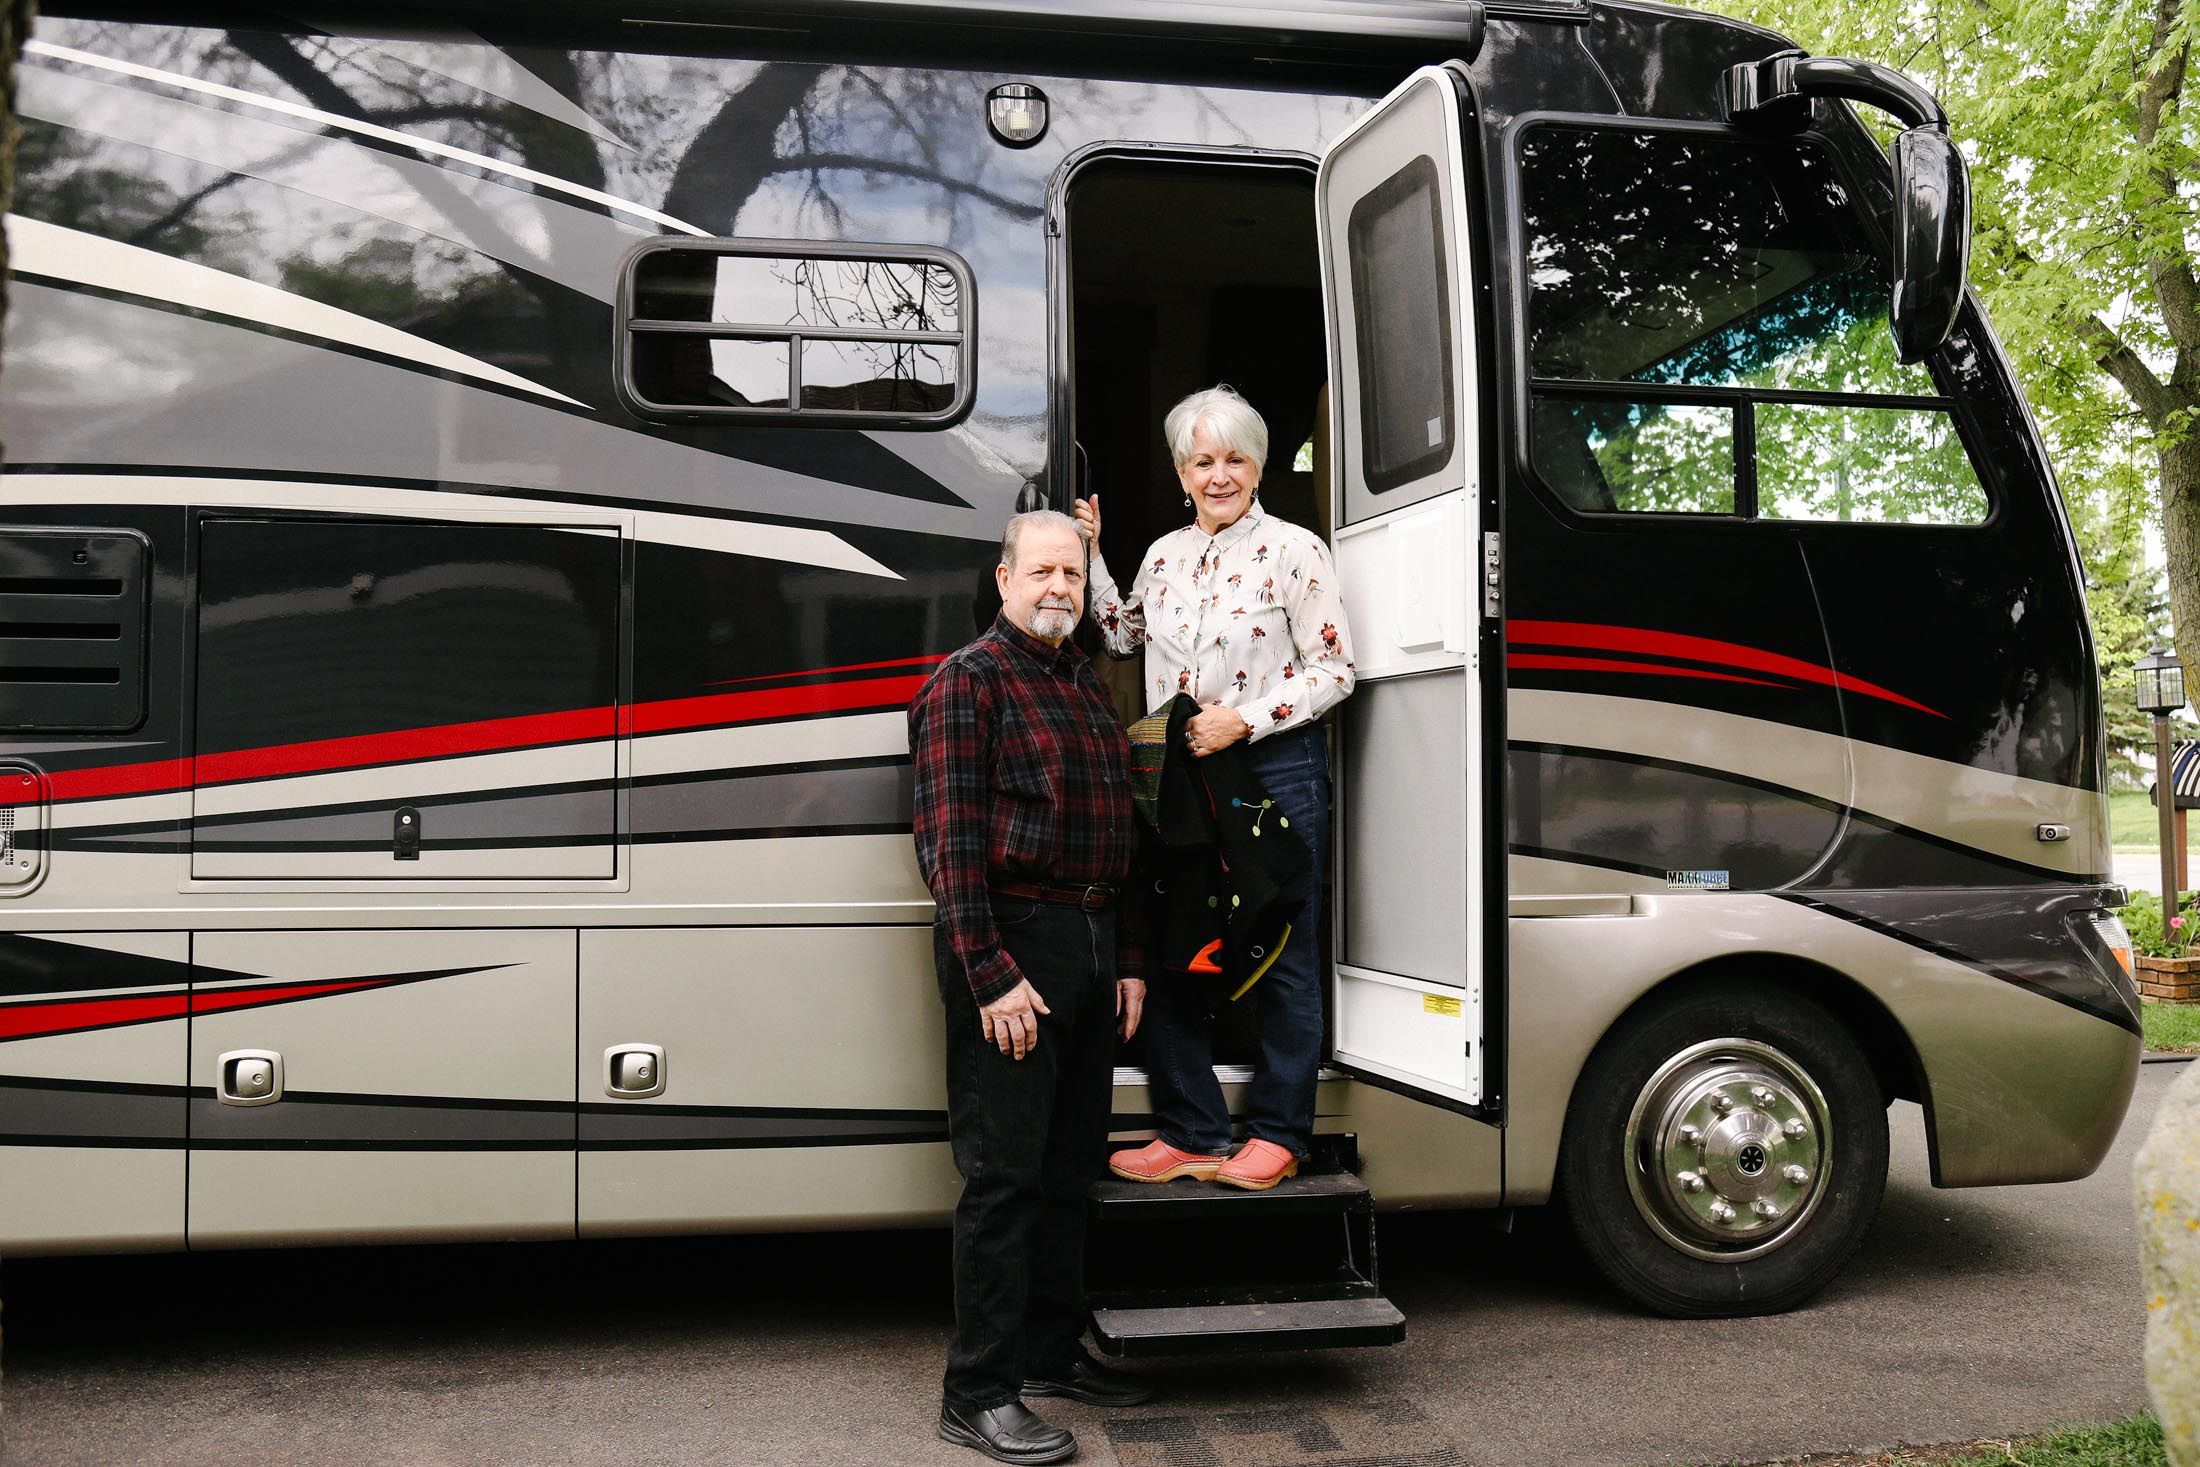 Jeff and Pam Sandberg pose with their new RV from Hilltop Camper and RV in St. Paul, Minnesota, May 20, 2020.